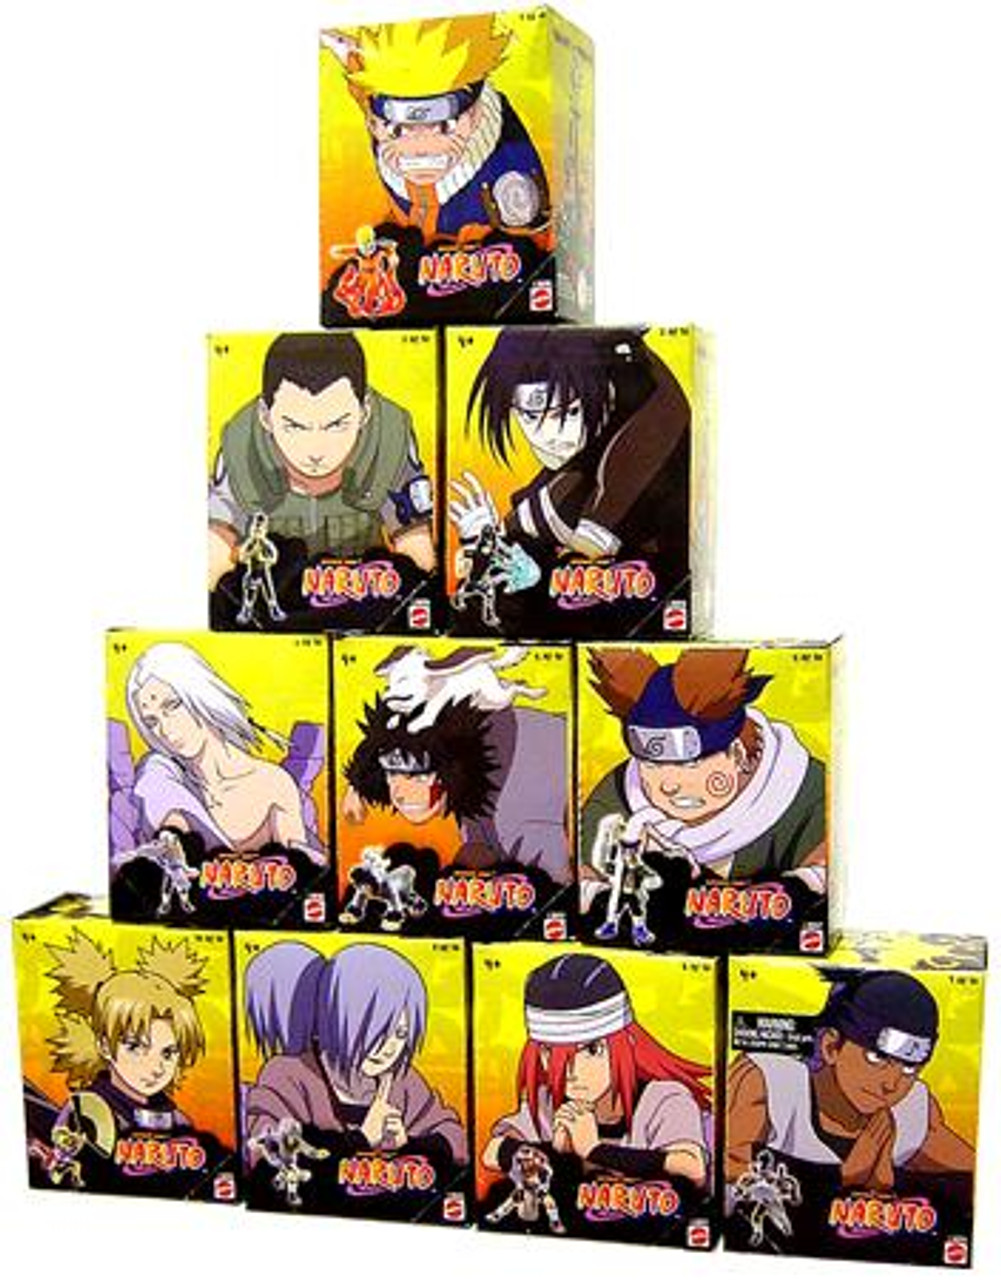 Naruto Set of 10 Tree Diorama Series 1 3-Inch PVC Figures